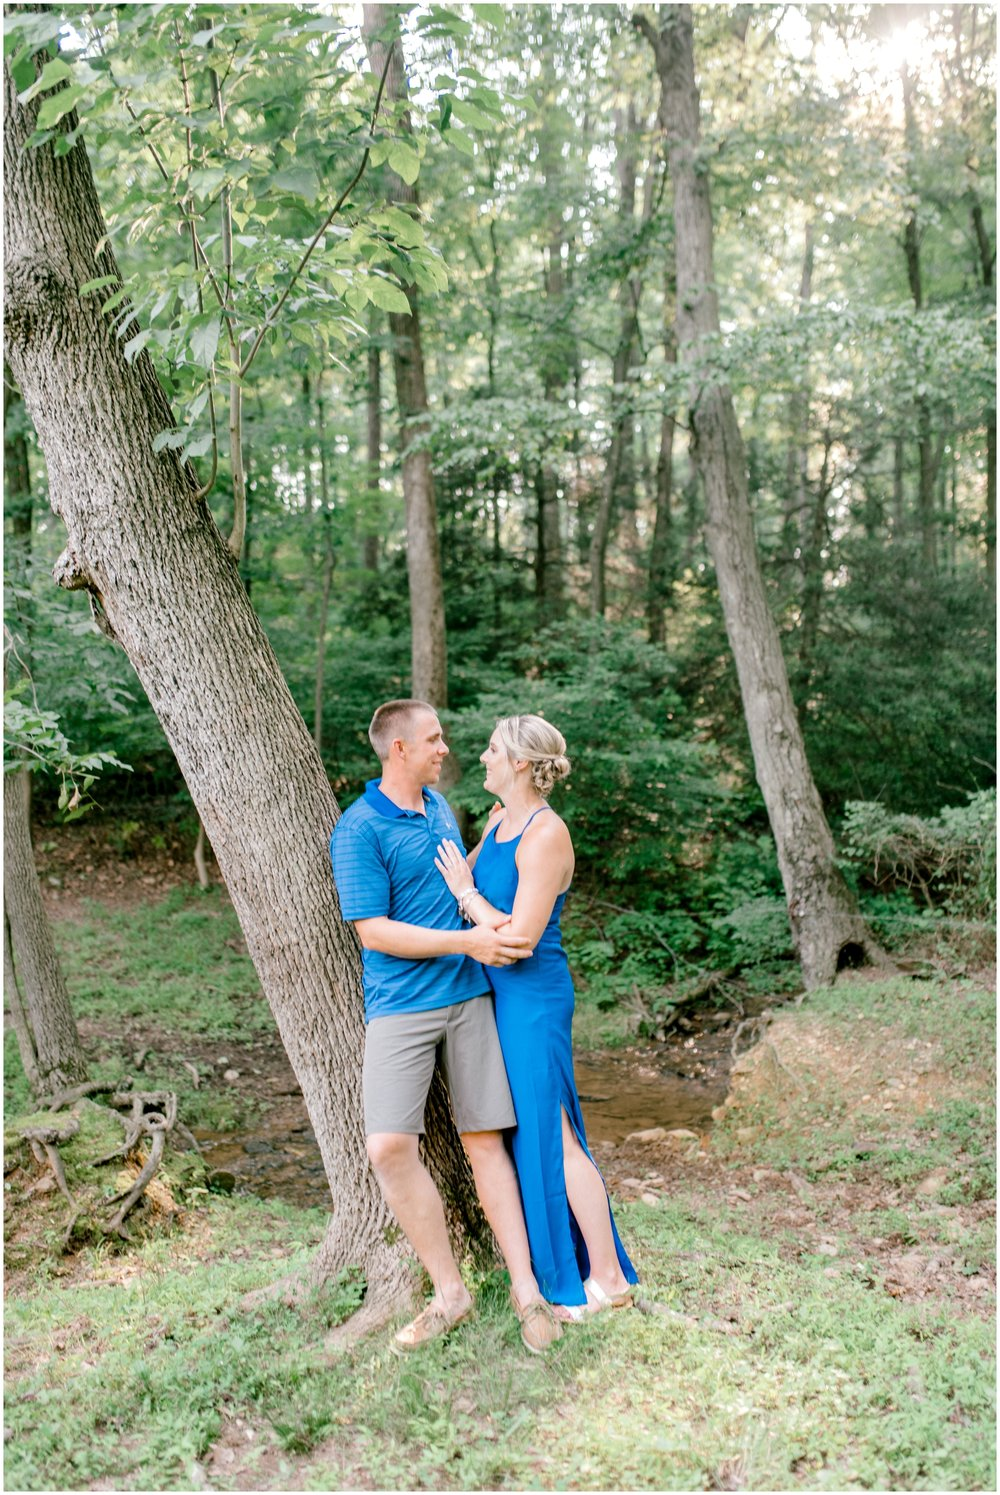 Summer Private Farm Engagement Session - Krista Brackin Photography_0005.jpg